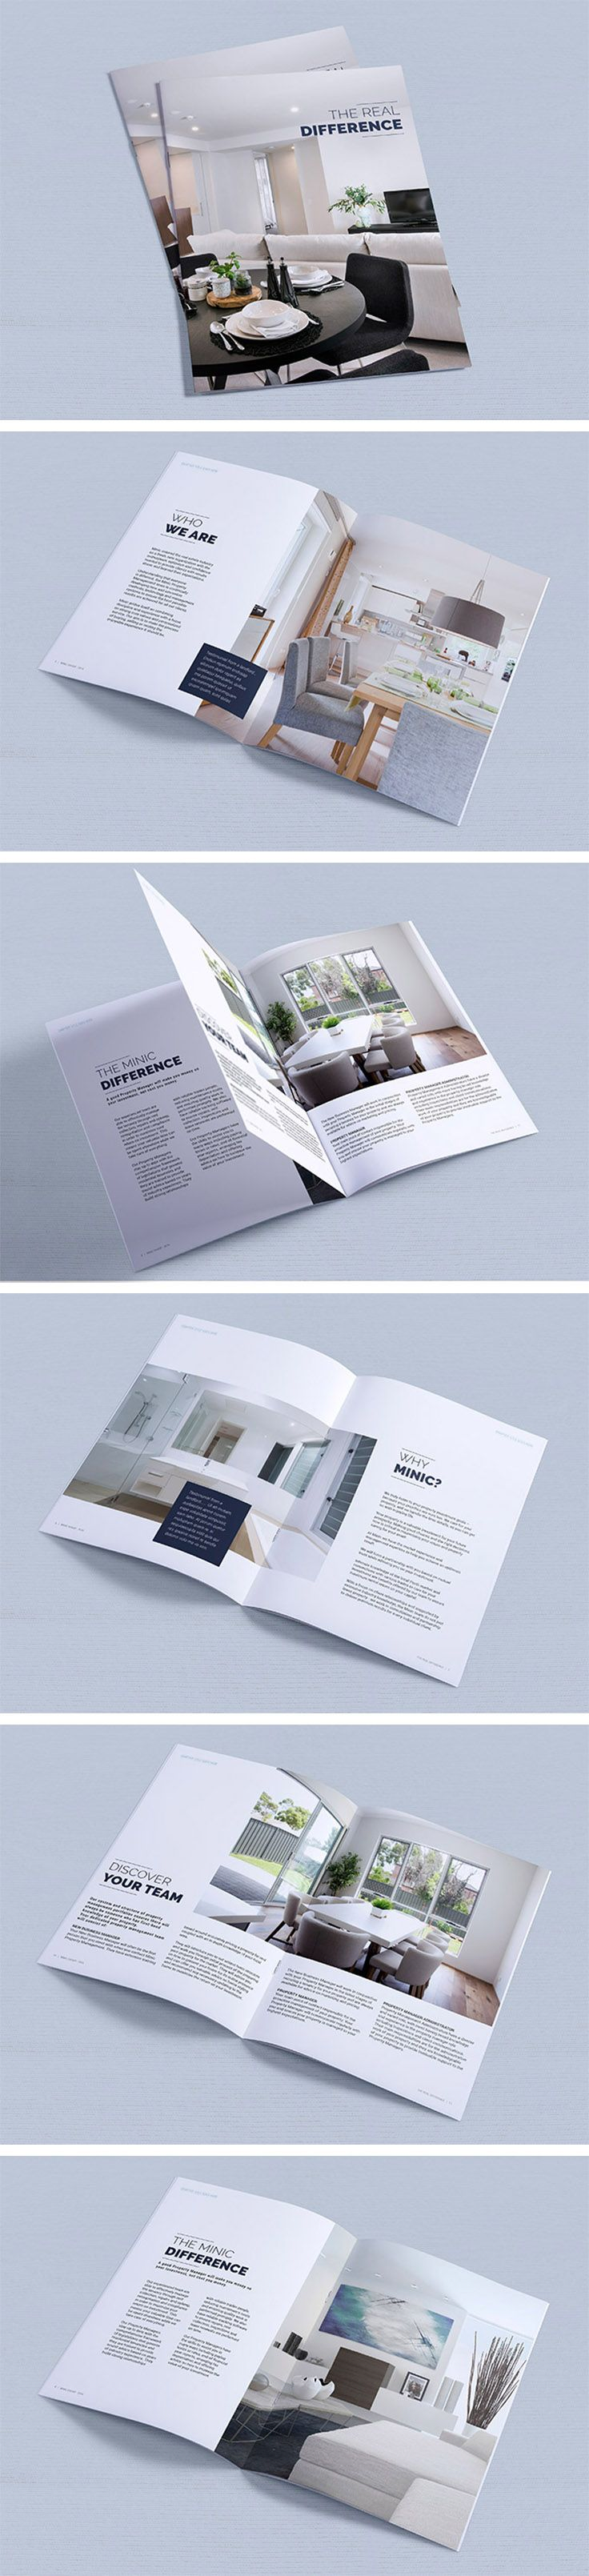 Real Estate Brochure, flyer layout A4 |  grid, property development, minimalist  |  Minic Property Group, Wilson  |  Valhalla Creative Design, Perth